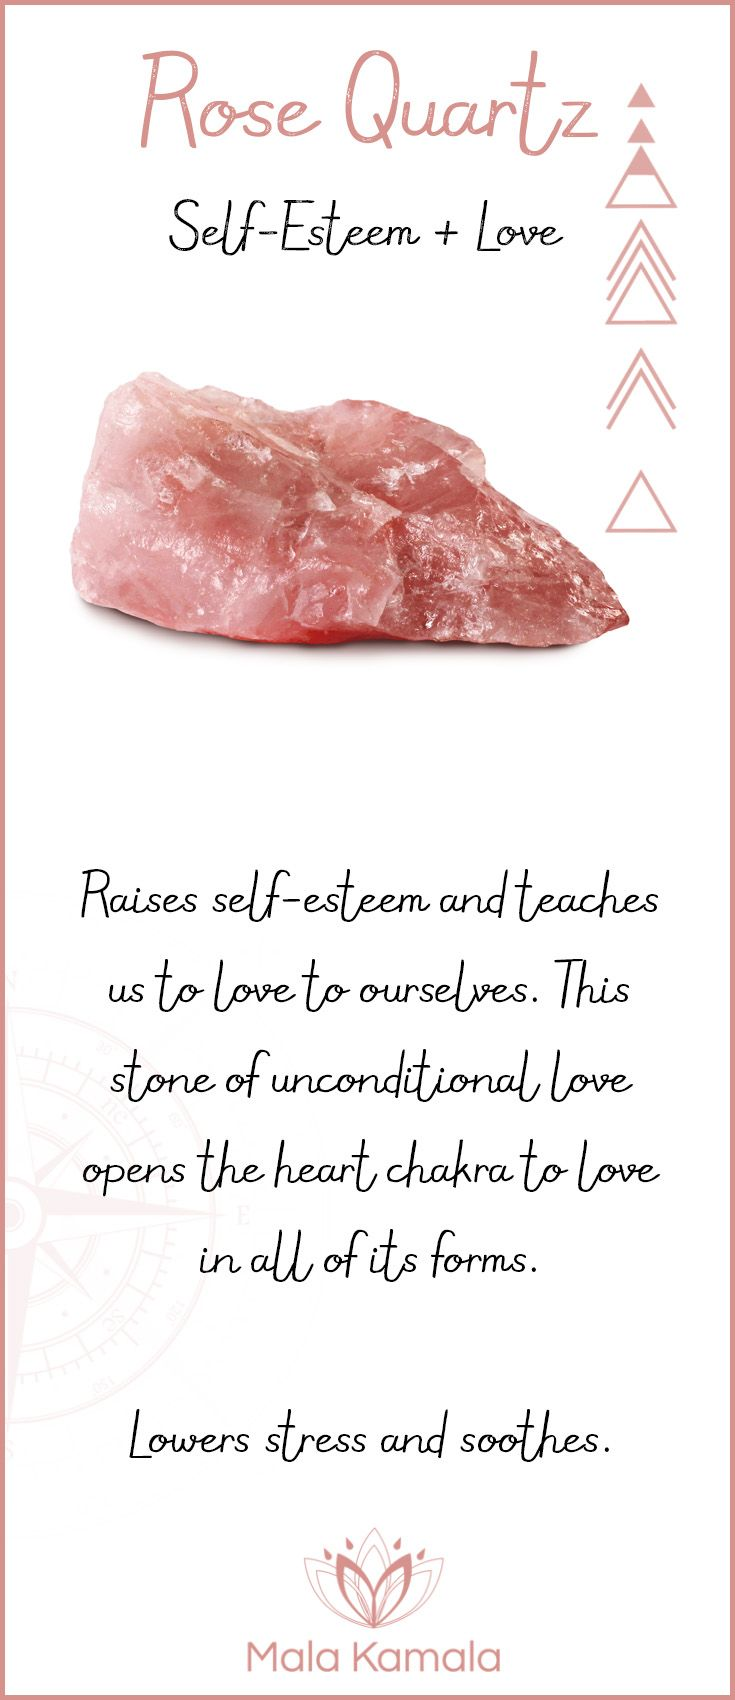 Pin To Save, Tap To Shop The Gem. What is the meaning and crystal and chakra healing properties of rose quarz?